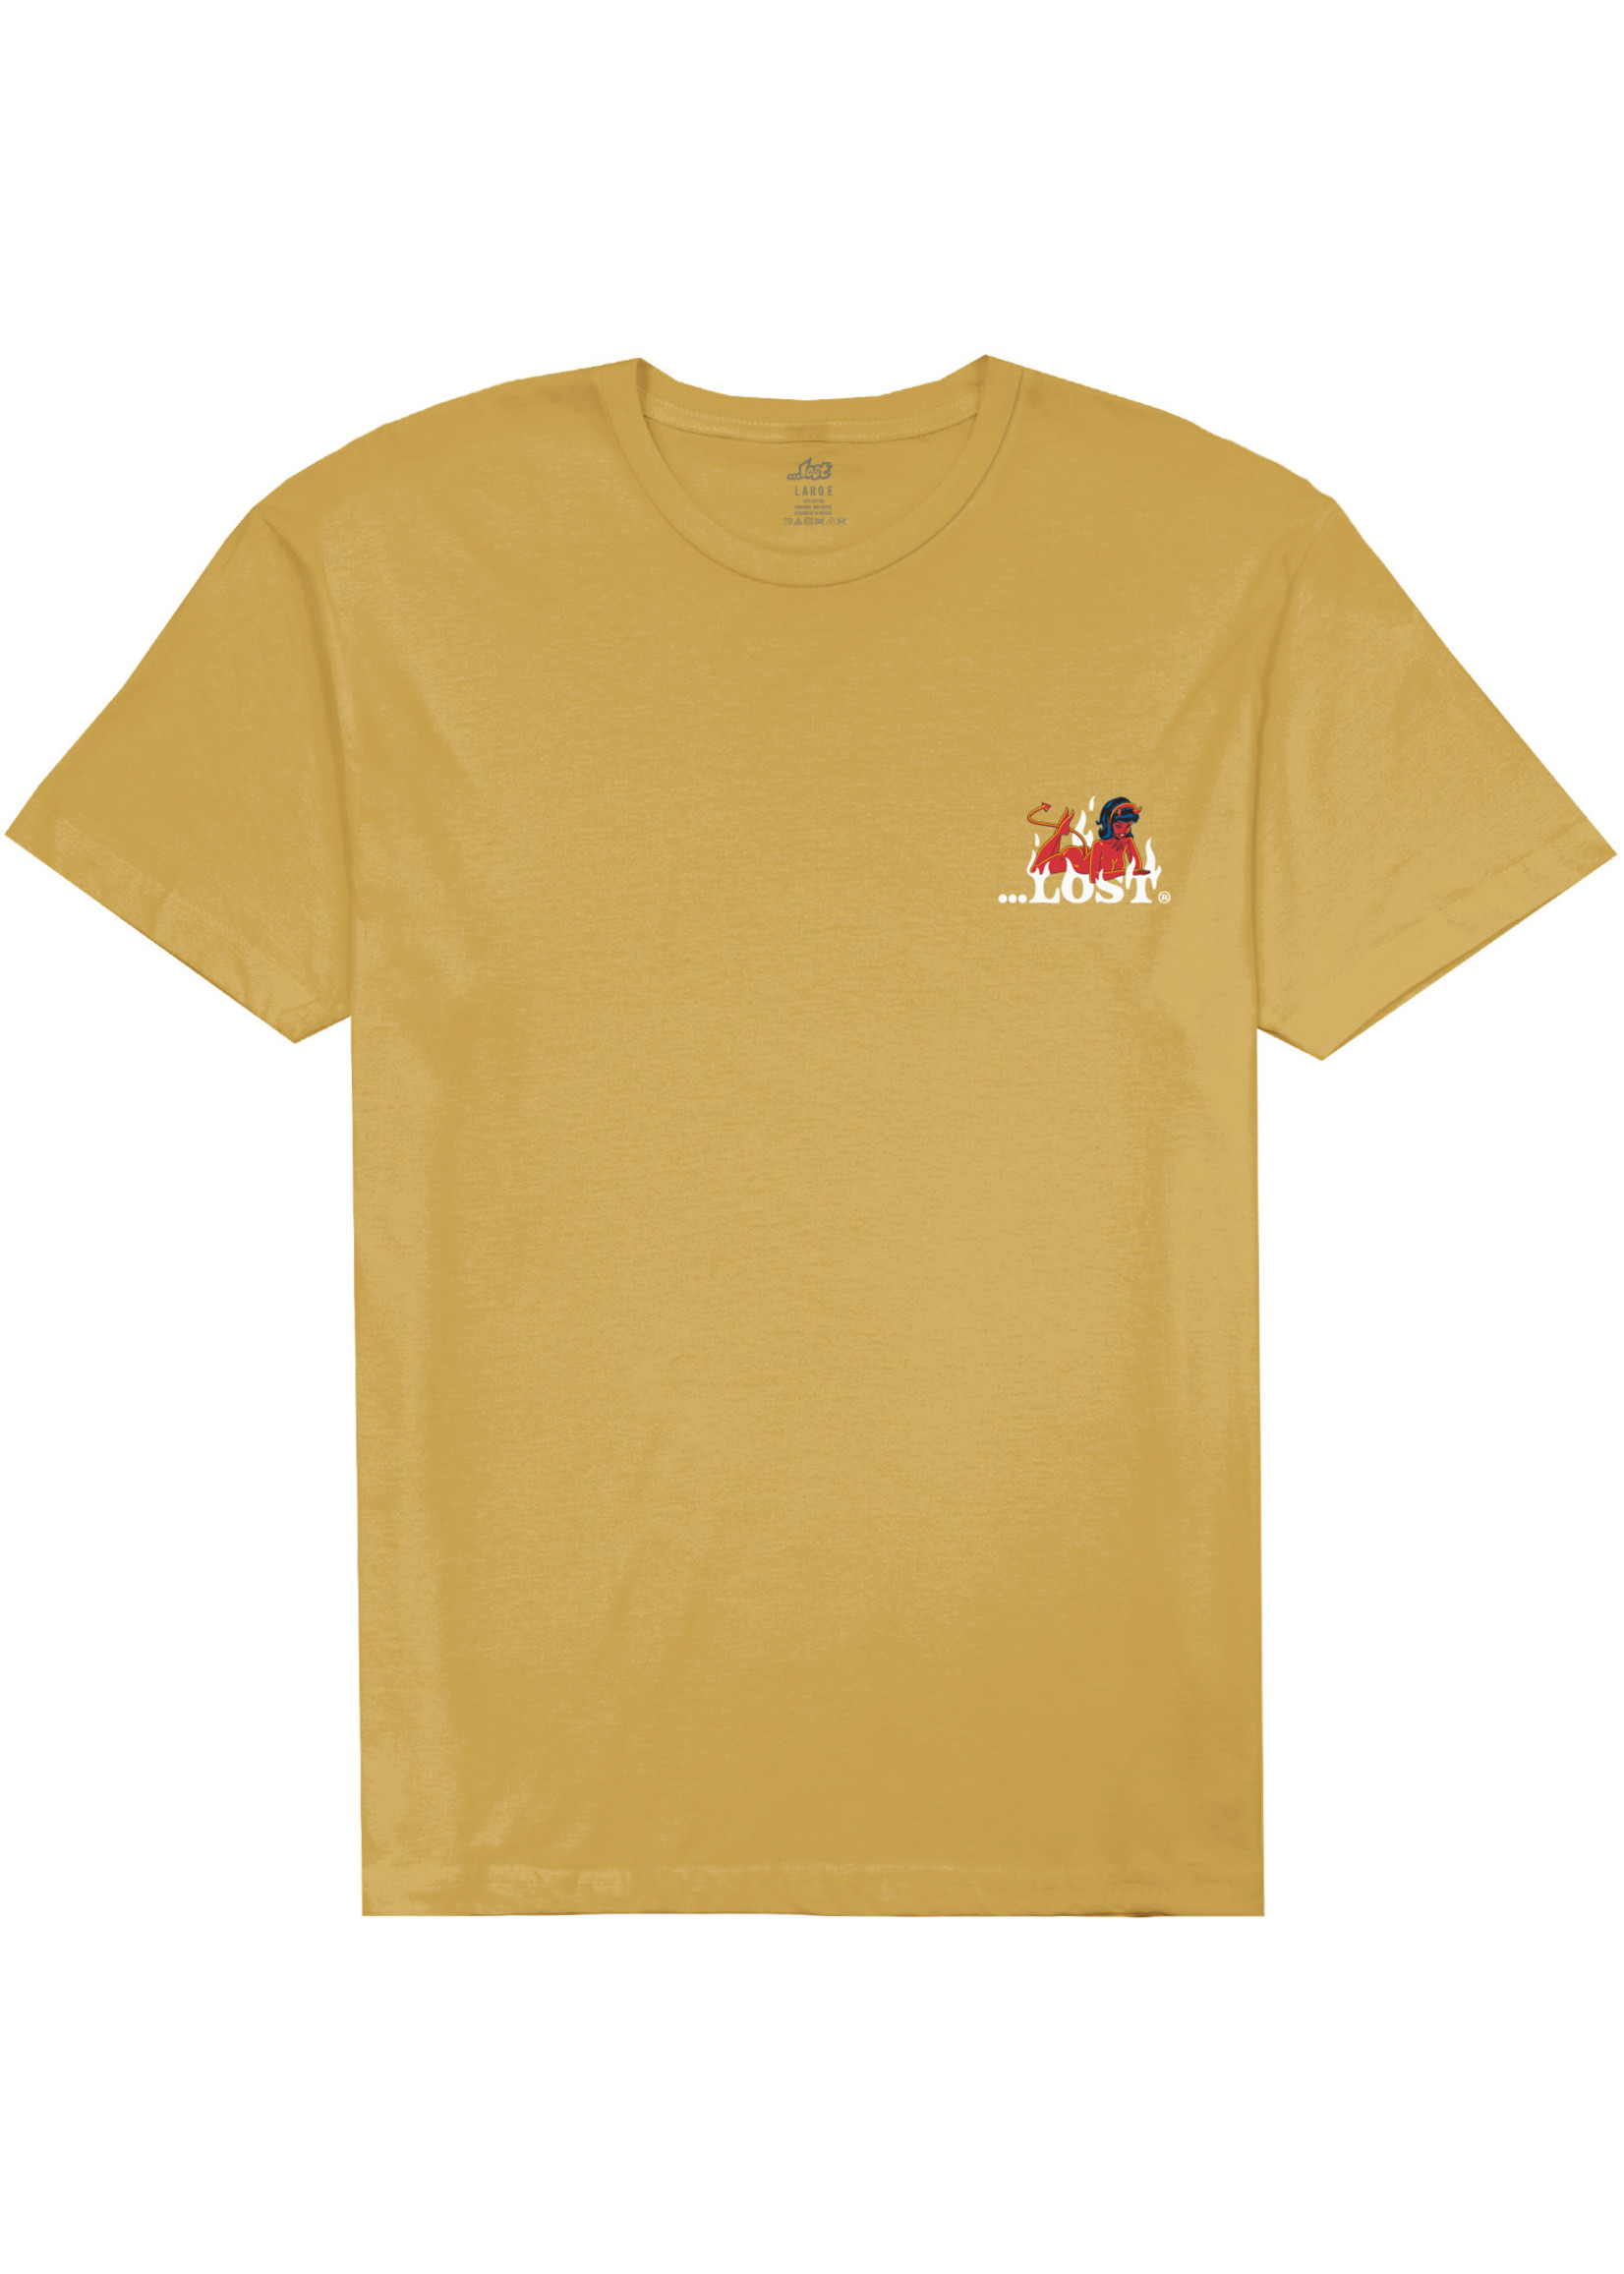 Lost Lost Inferno Tee